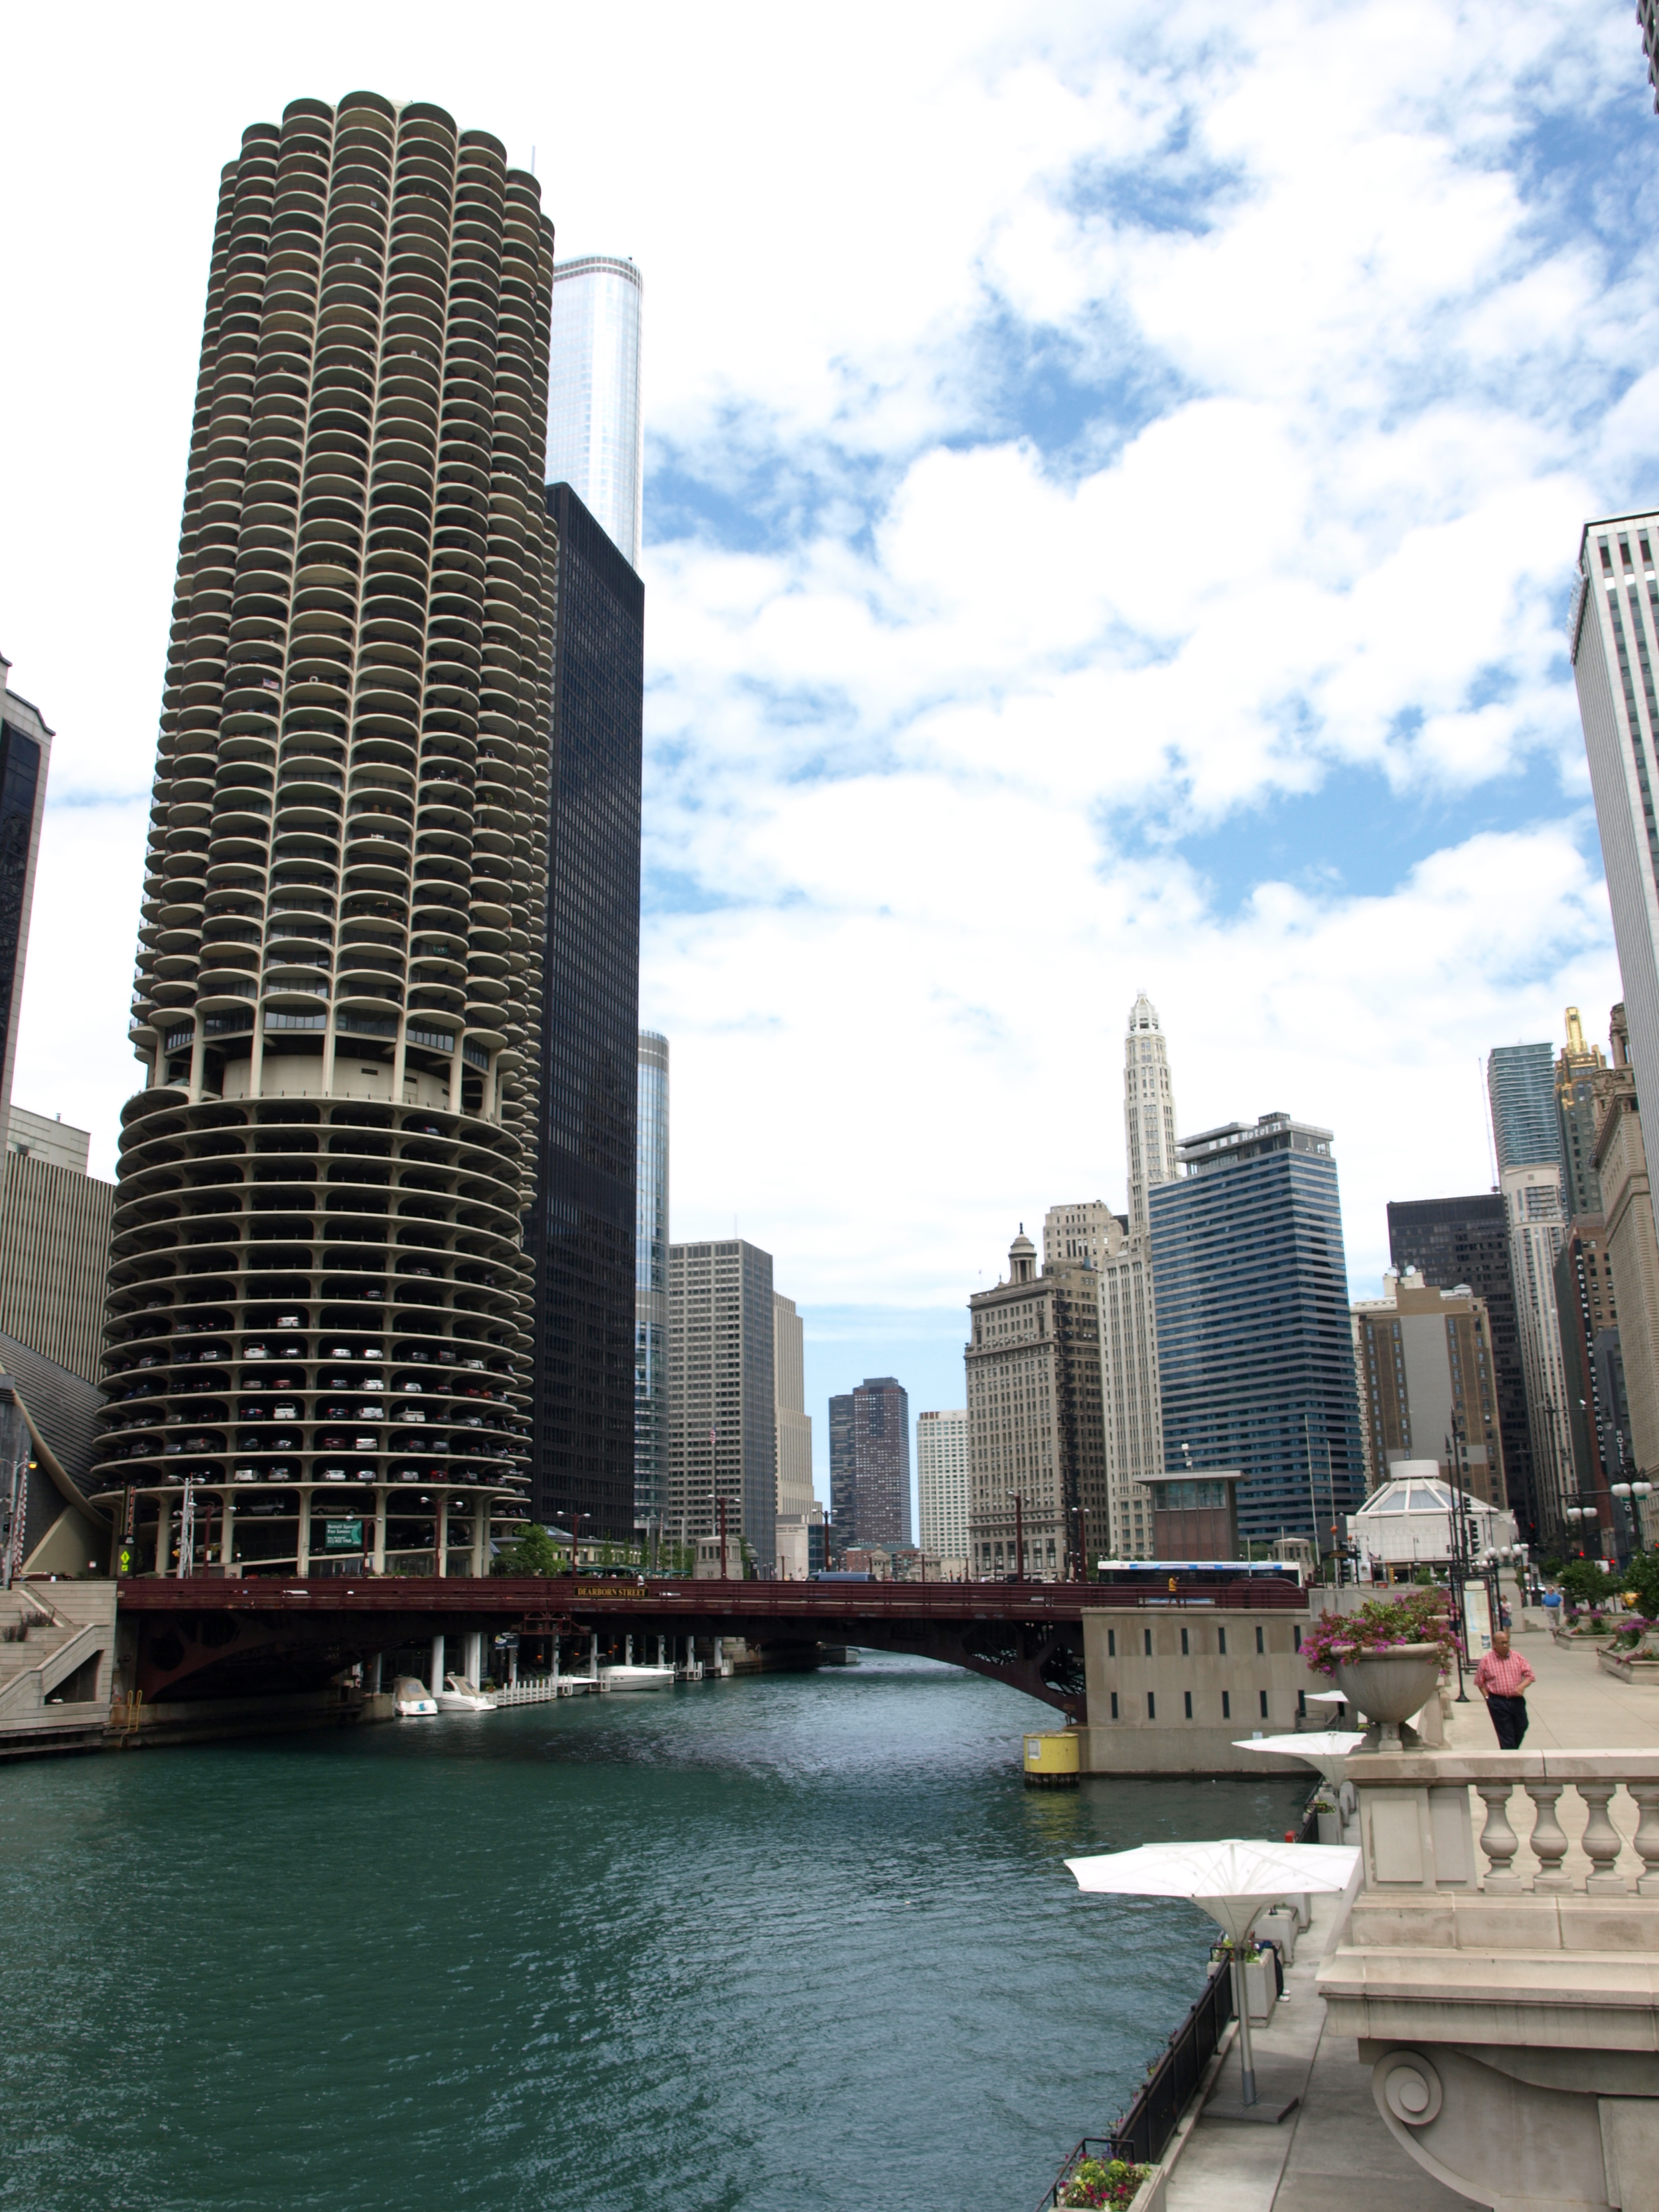 Chicago River with one of the two Marina City towers in view on the left